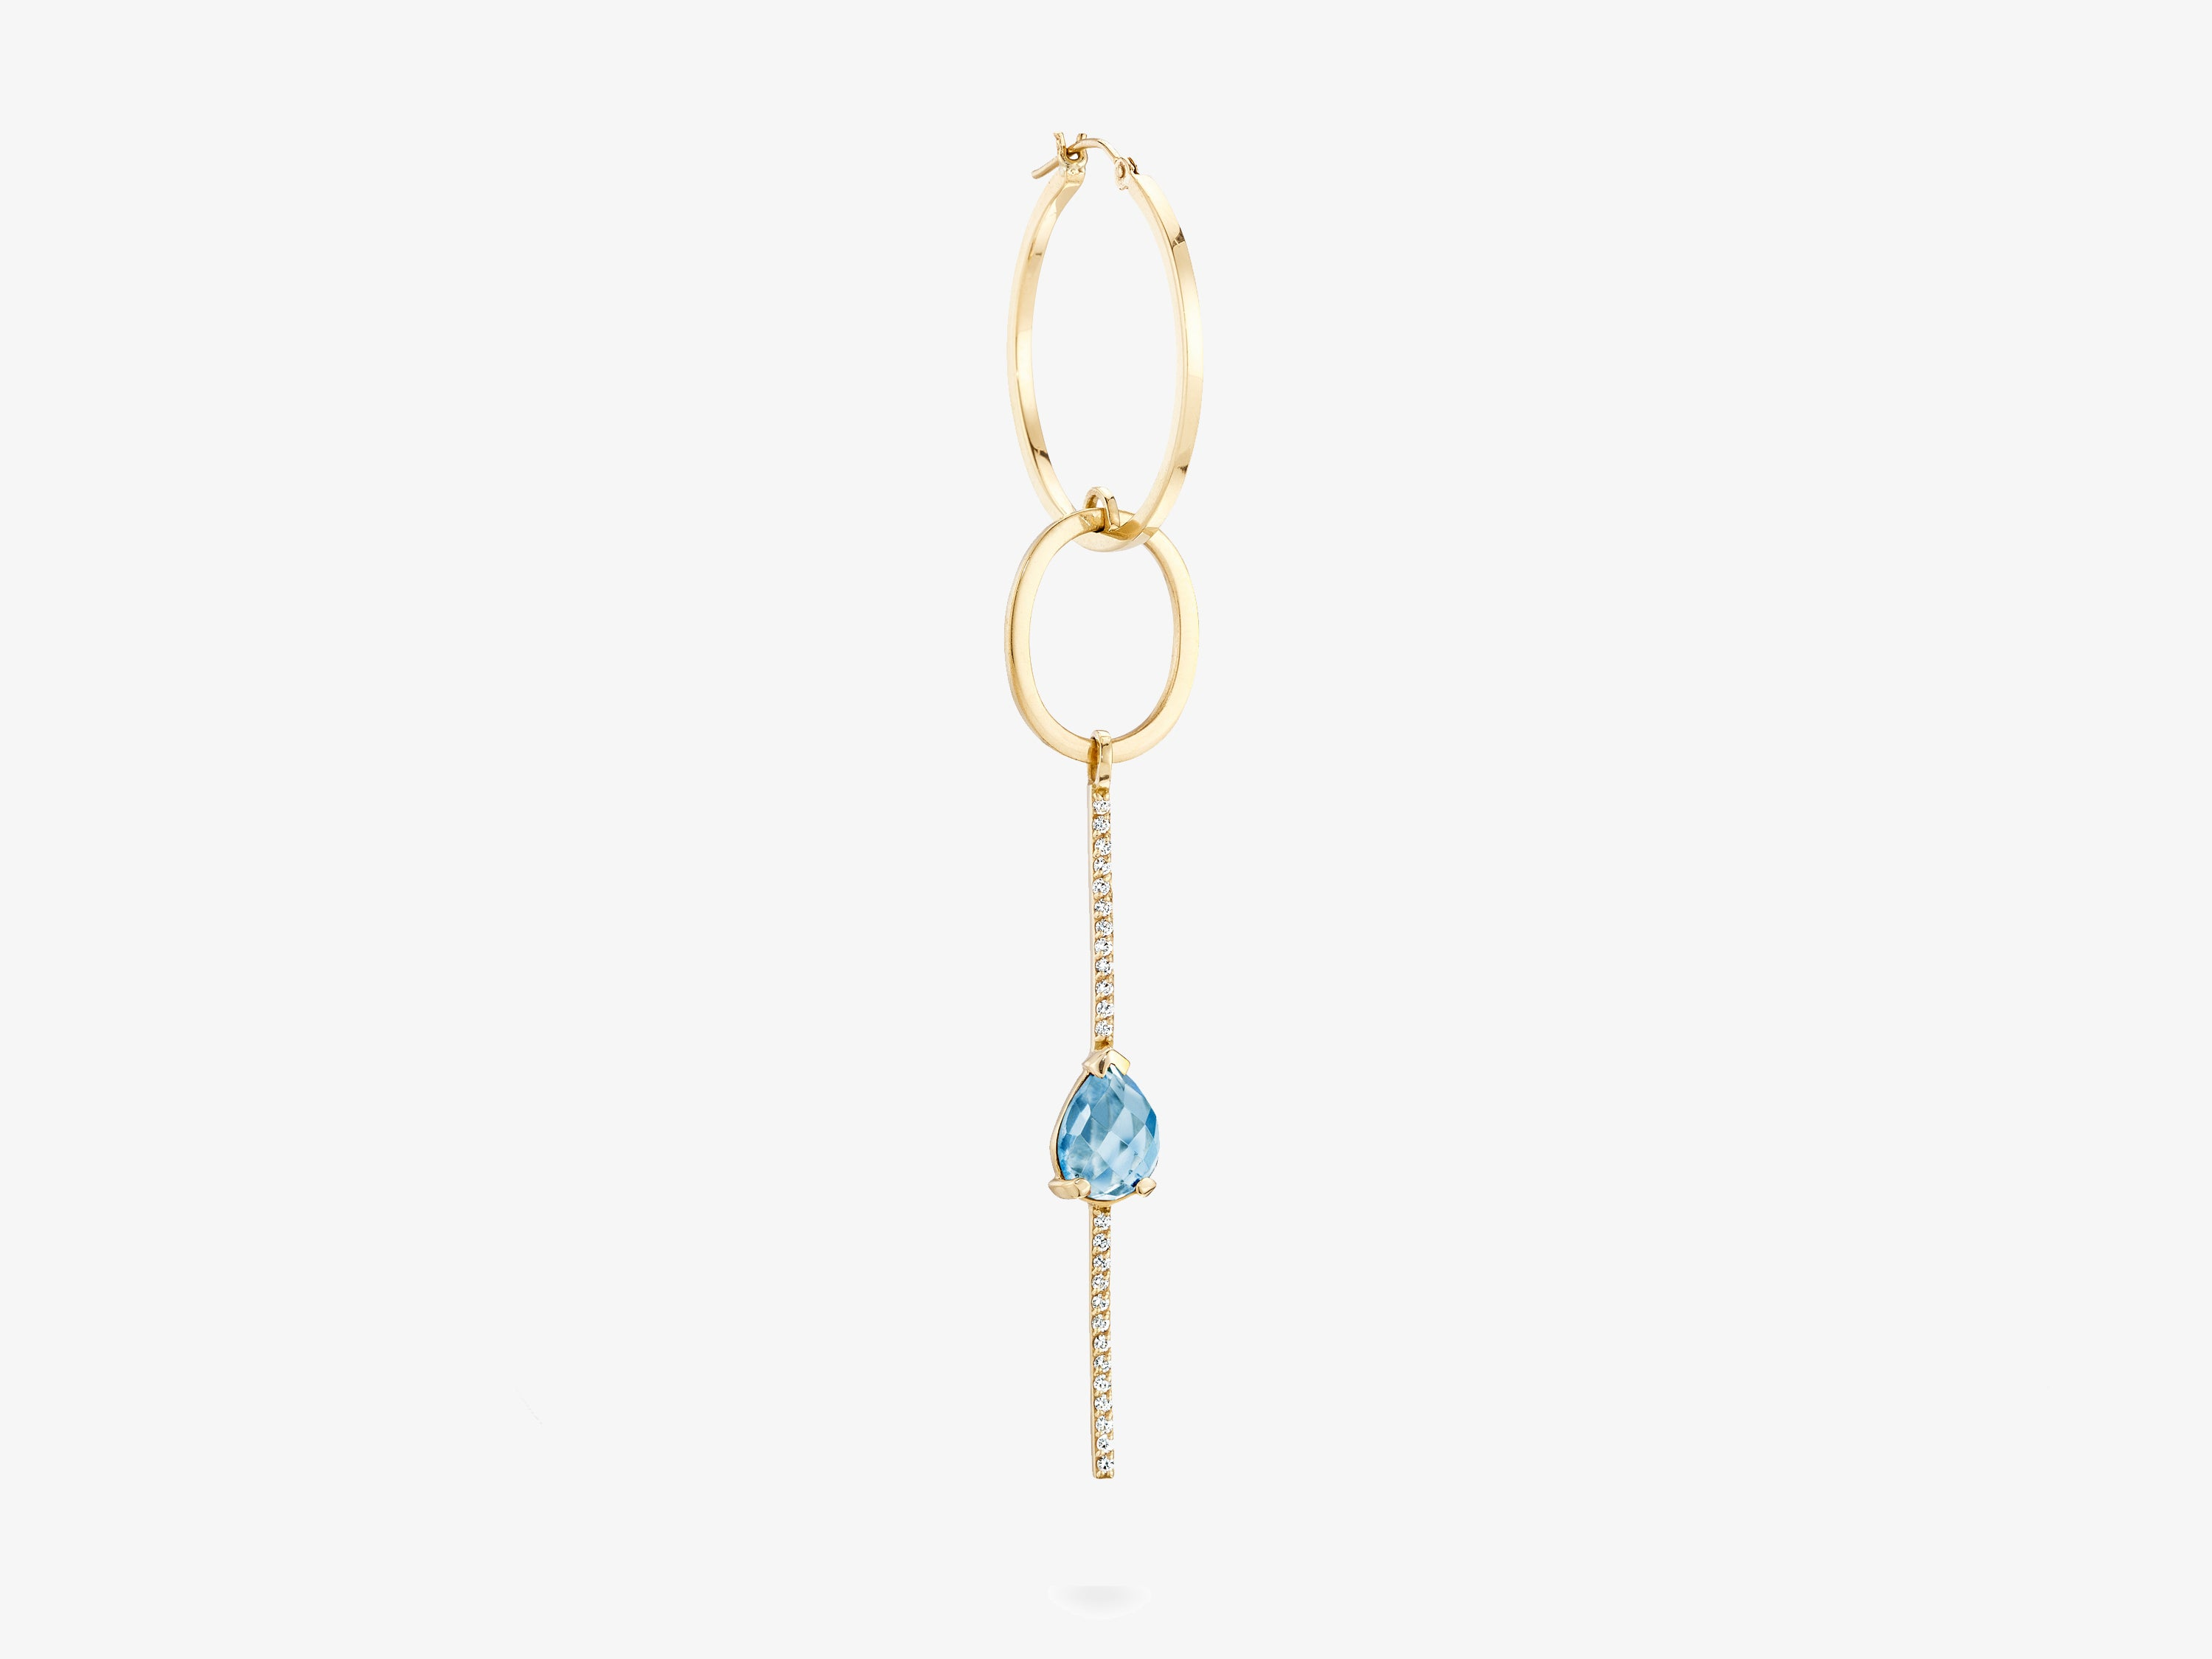 Single Statement Earring with Diamonds Pave Bar and Rose Cut Stone Details